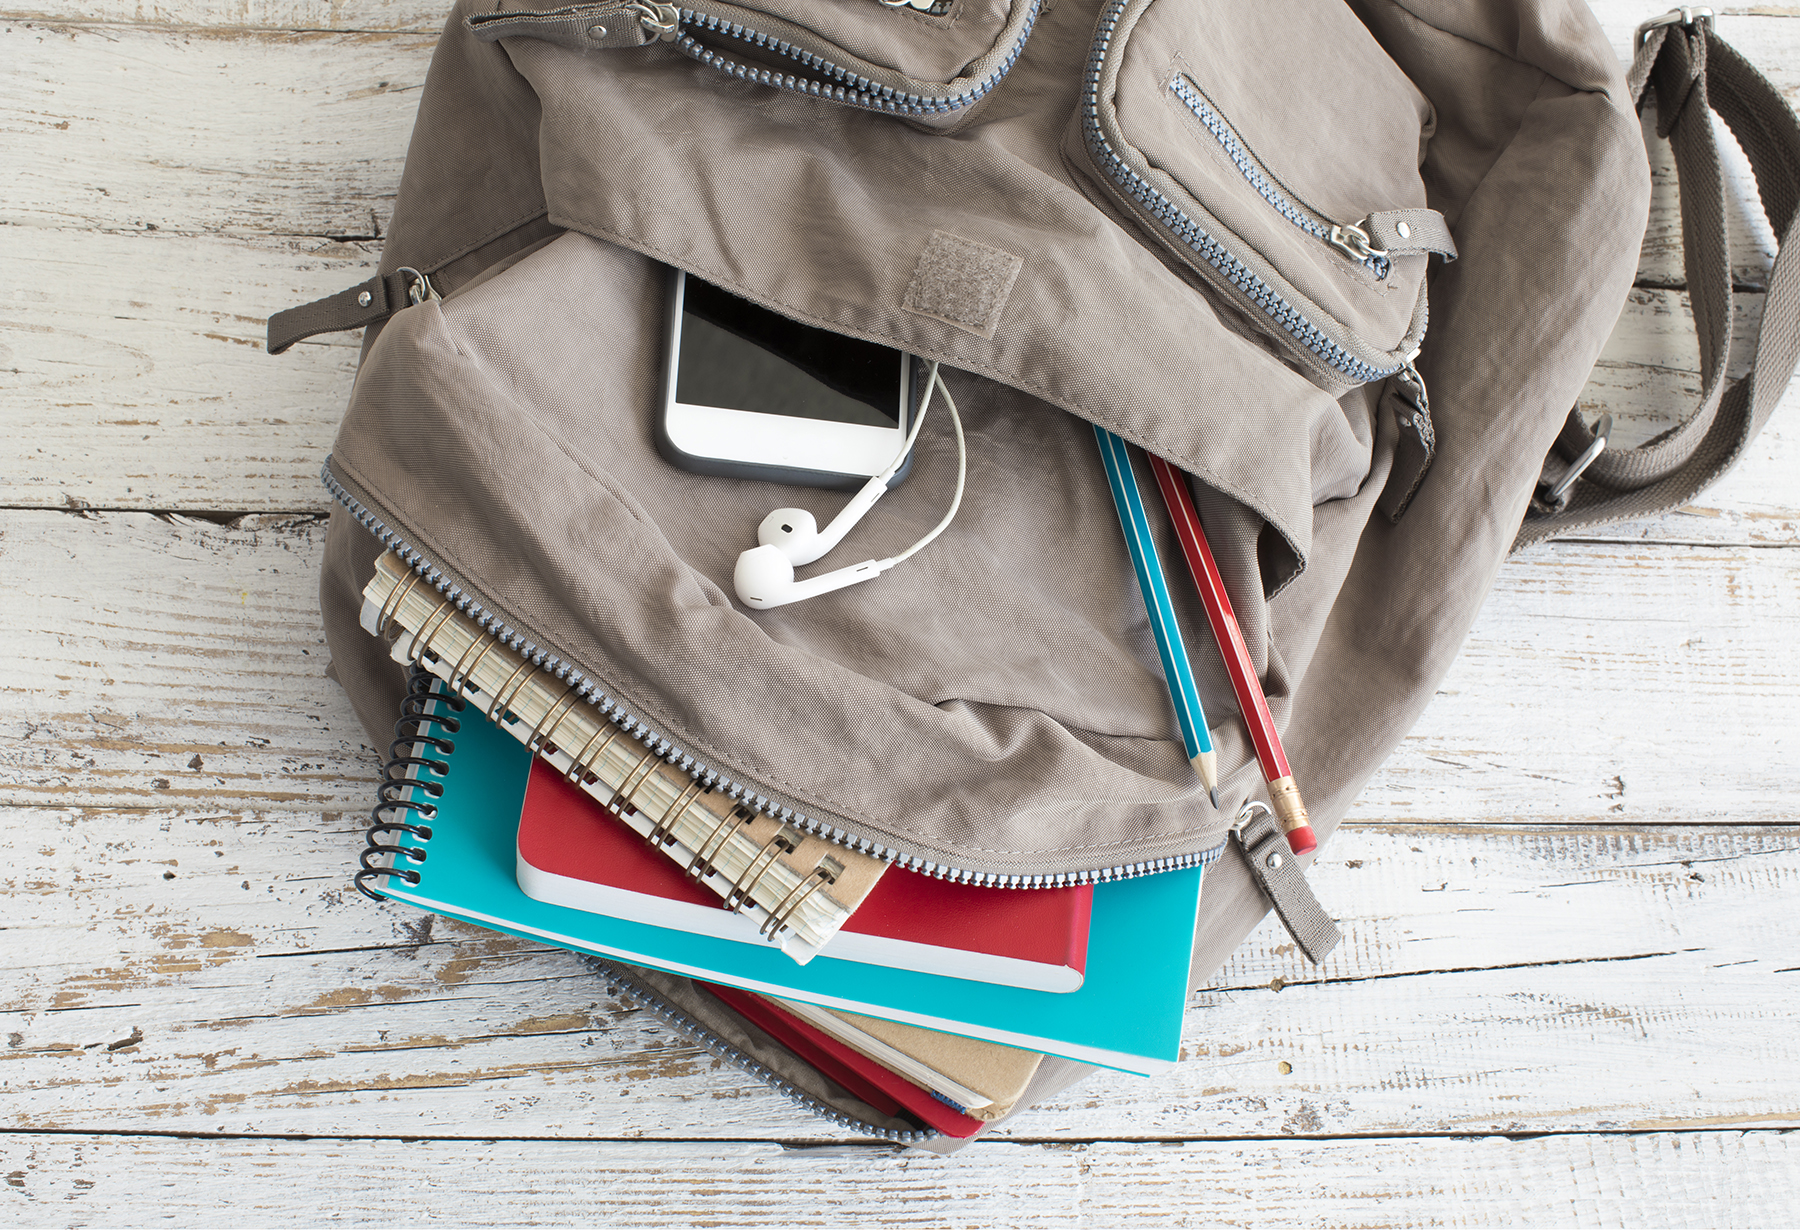 Backpack with school supplies, phone